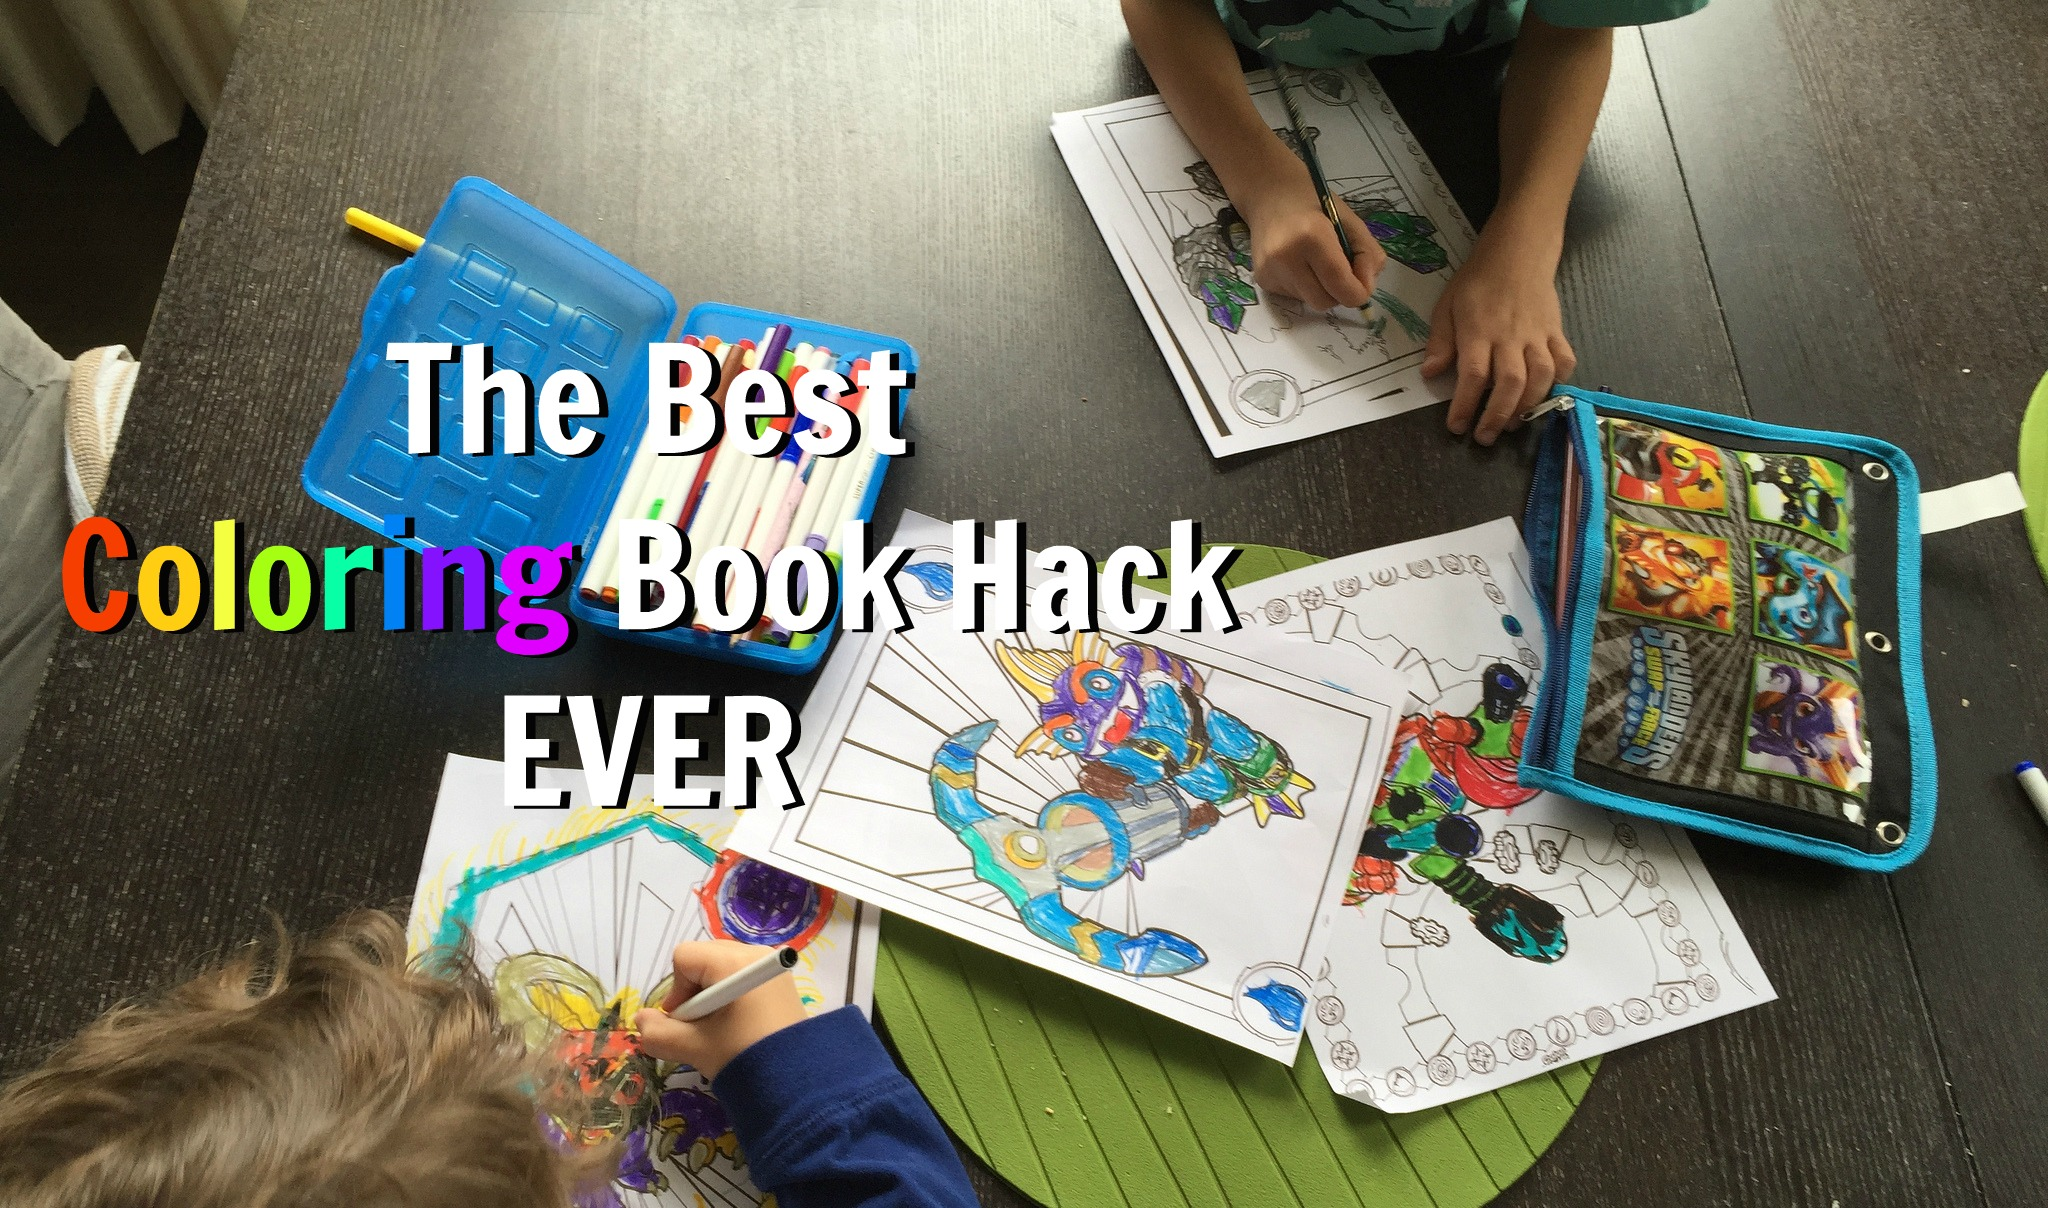 Best Coloring Book Hack Ever